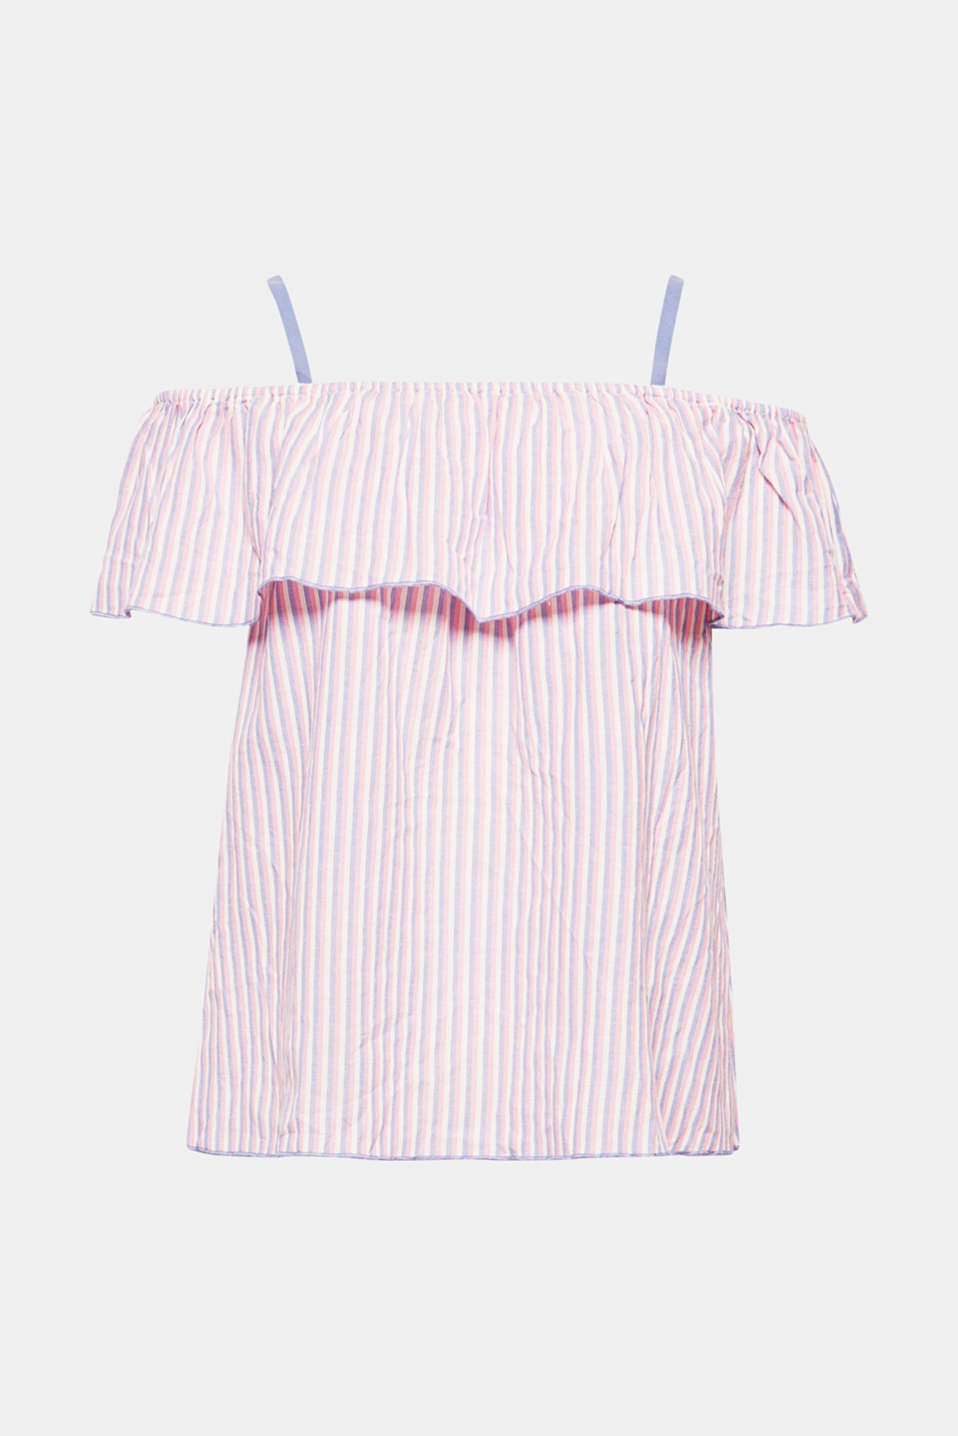 A fine striped pattern and sensual Carmen neckline with straps and a flounce – this is what makes this off-the-shoulder blouse a light and airy eye-catcher!